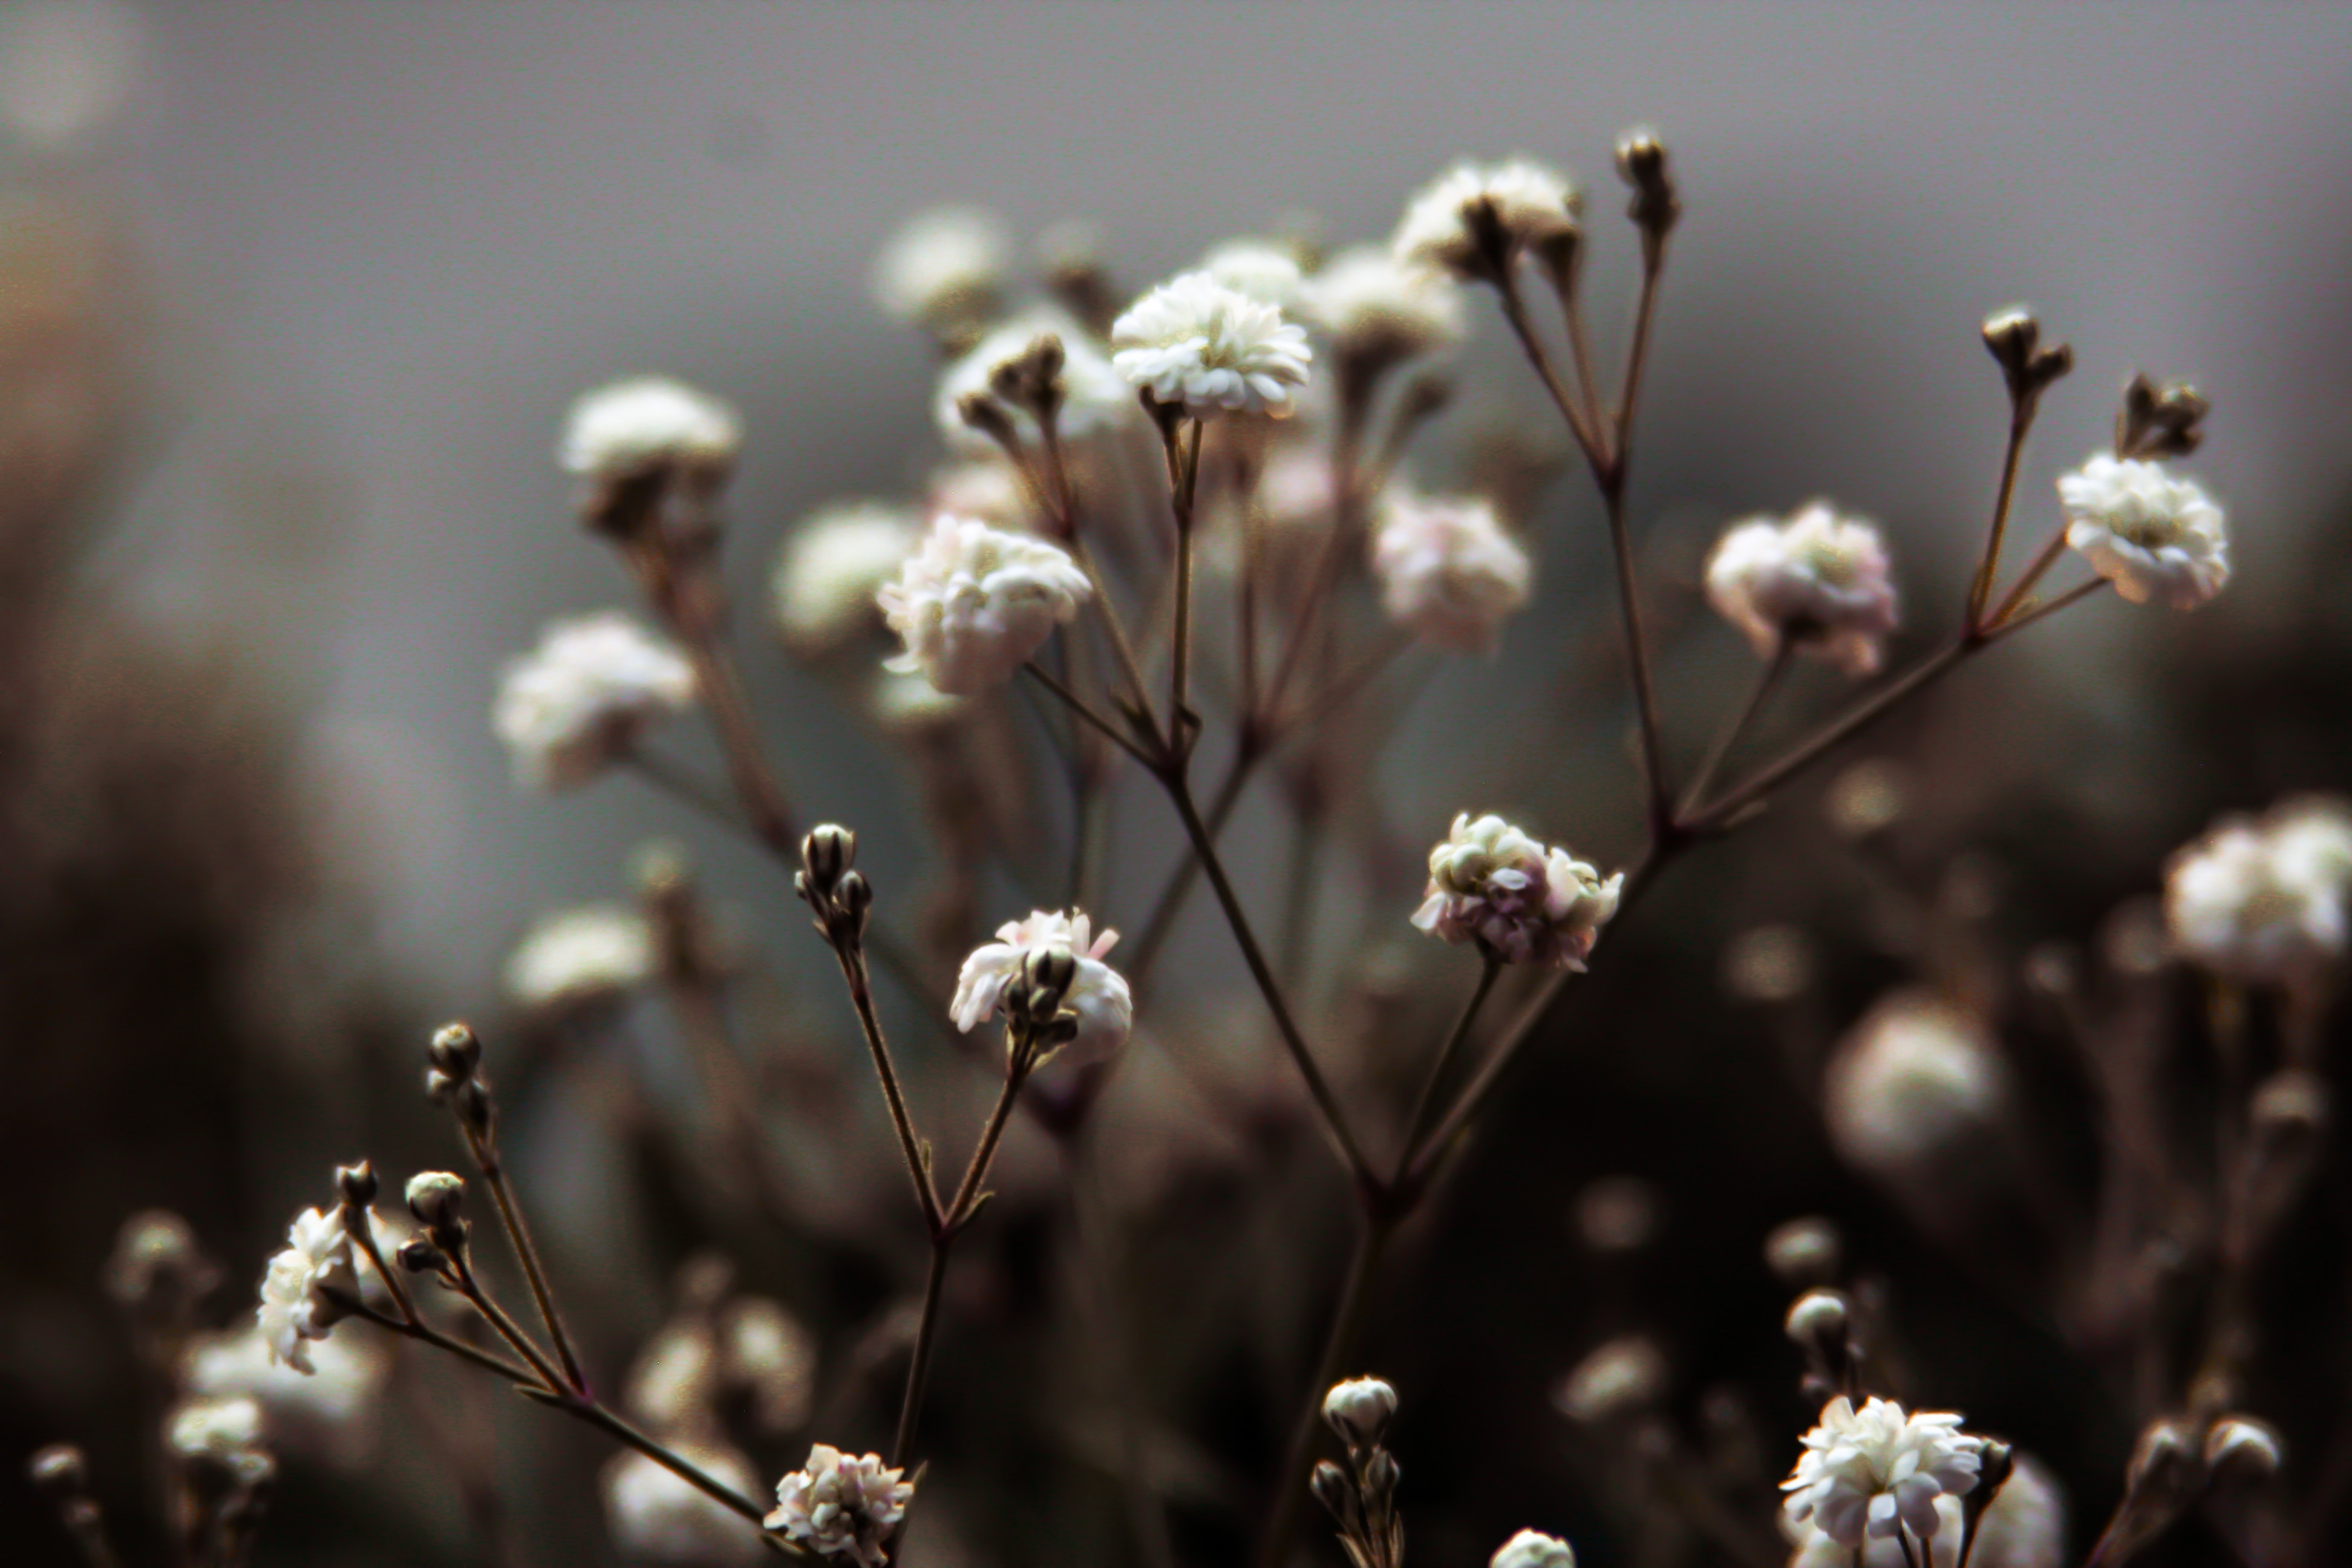 Free photo photo of white flower buds plant outdoors season photo of white flower buds mightylinksfo